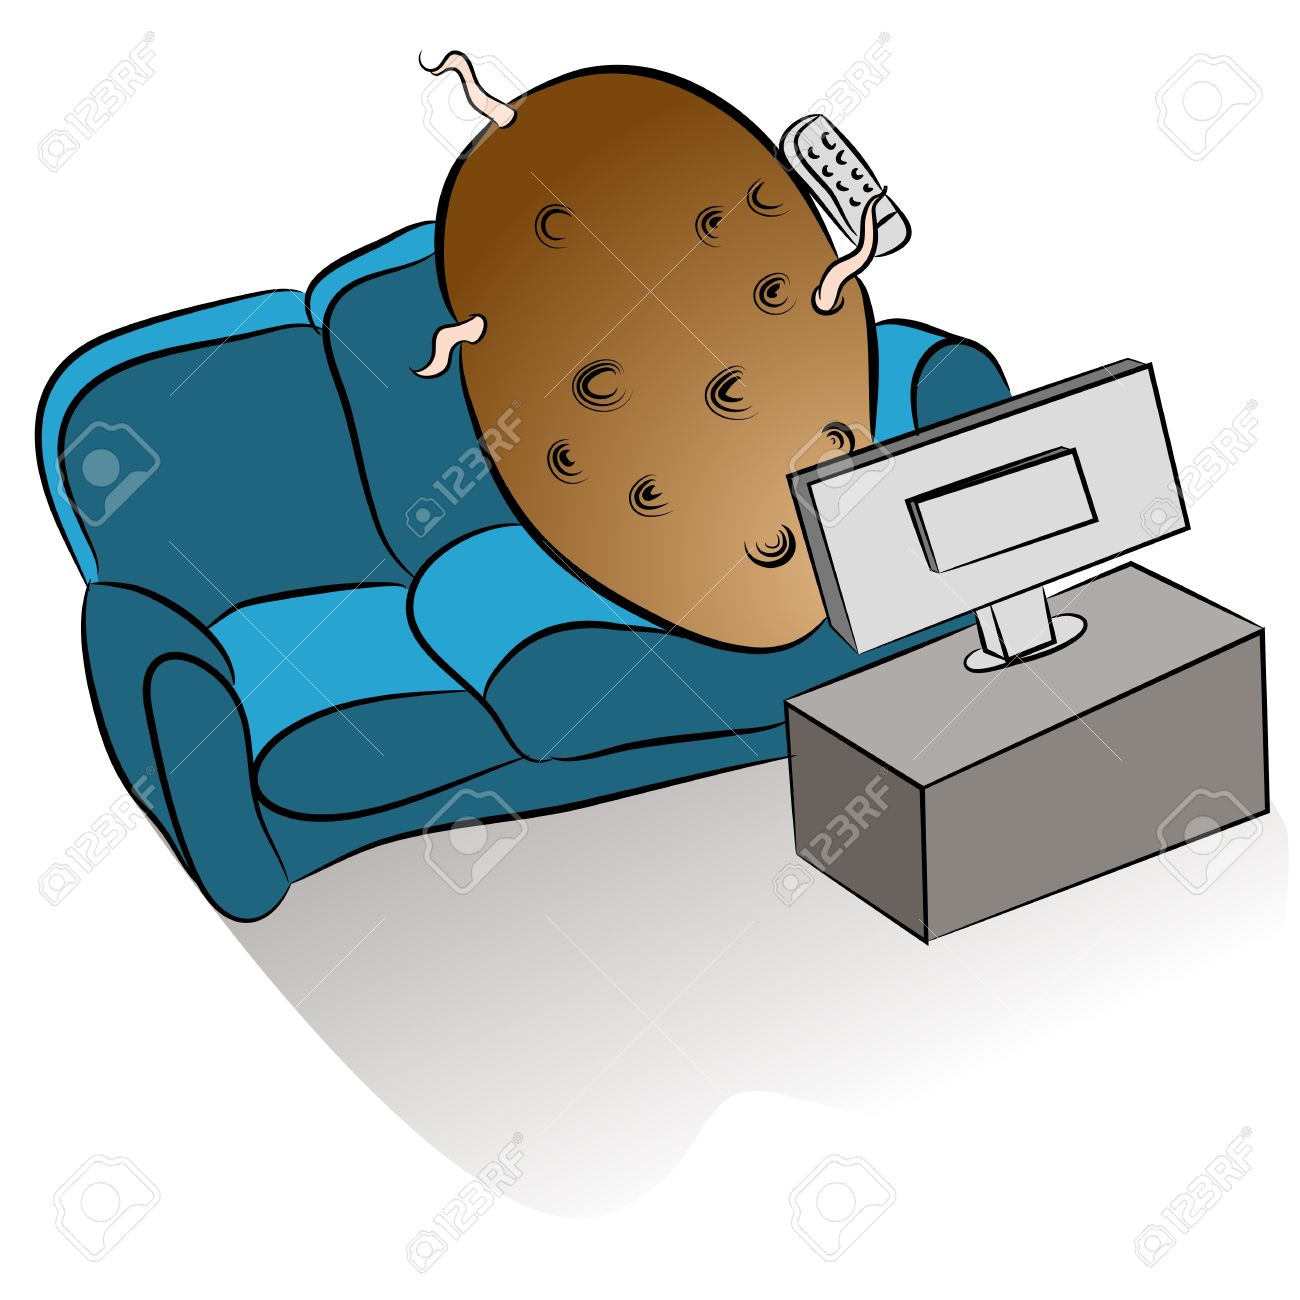 hight resolution of an image of a couch potato watching tv stock vector 18025582